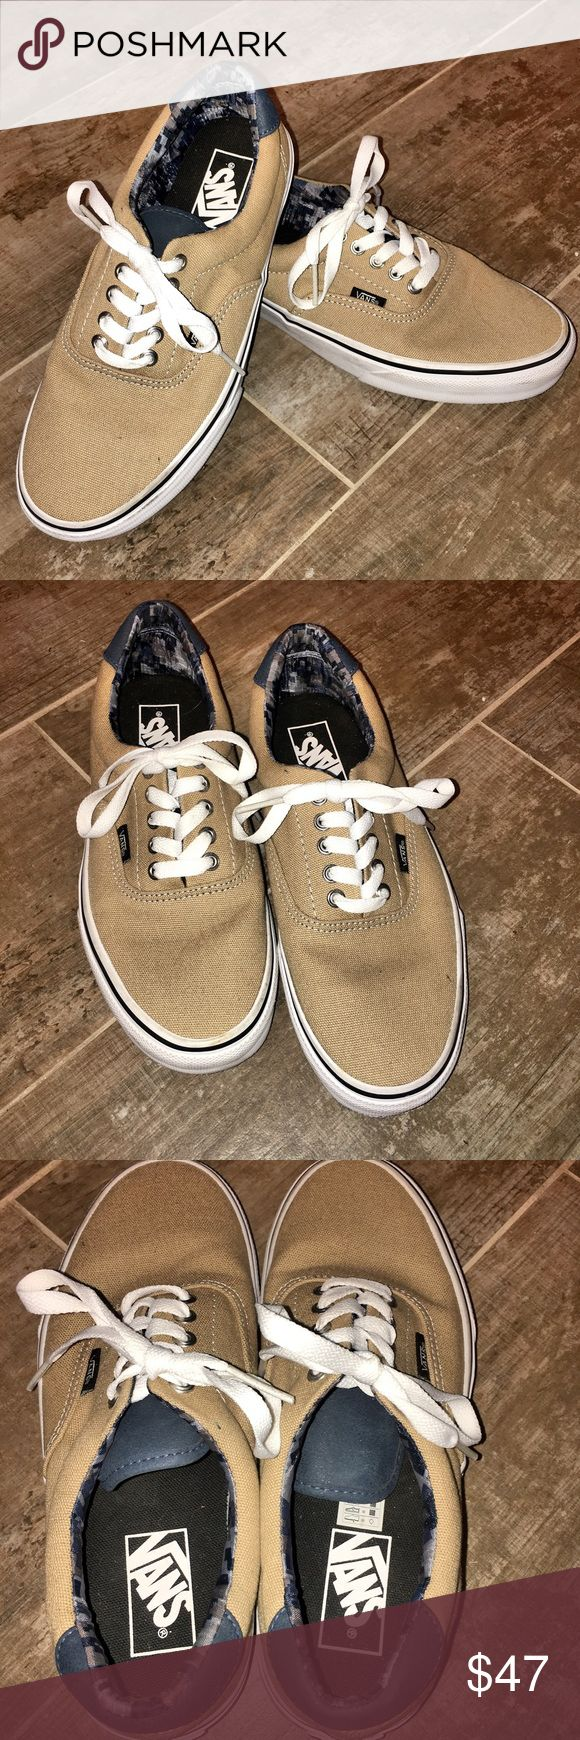 Vans Era 59 Shoes Men's Size 7 Women's Size 8.5 Vans Era 59 Shoes Men's Size 7 Women's Size 8.5 - LIKE NEW WORN ONCE BRIEFLYWho knows if Tony Alva and Stacy Peralta foresaw the longevity of the shoe they were about to create when they designed the first Era shoes in the mid '70s. But here they are, forty years later, and the shoes are still a go-to for skaters and style-chasers alike. This take on the Era features a leather heel accent, as well as the original padding and waffle outsole…